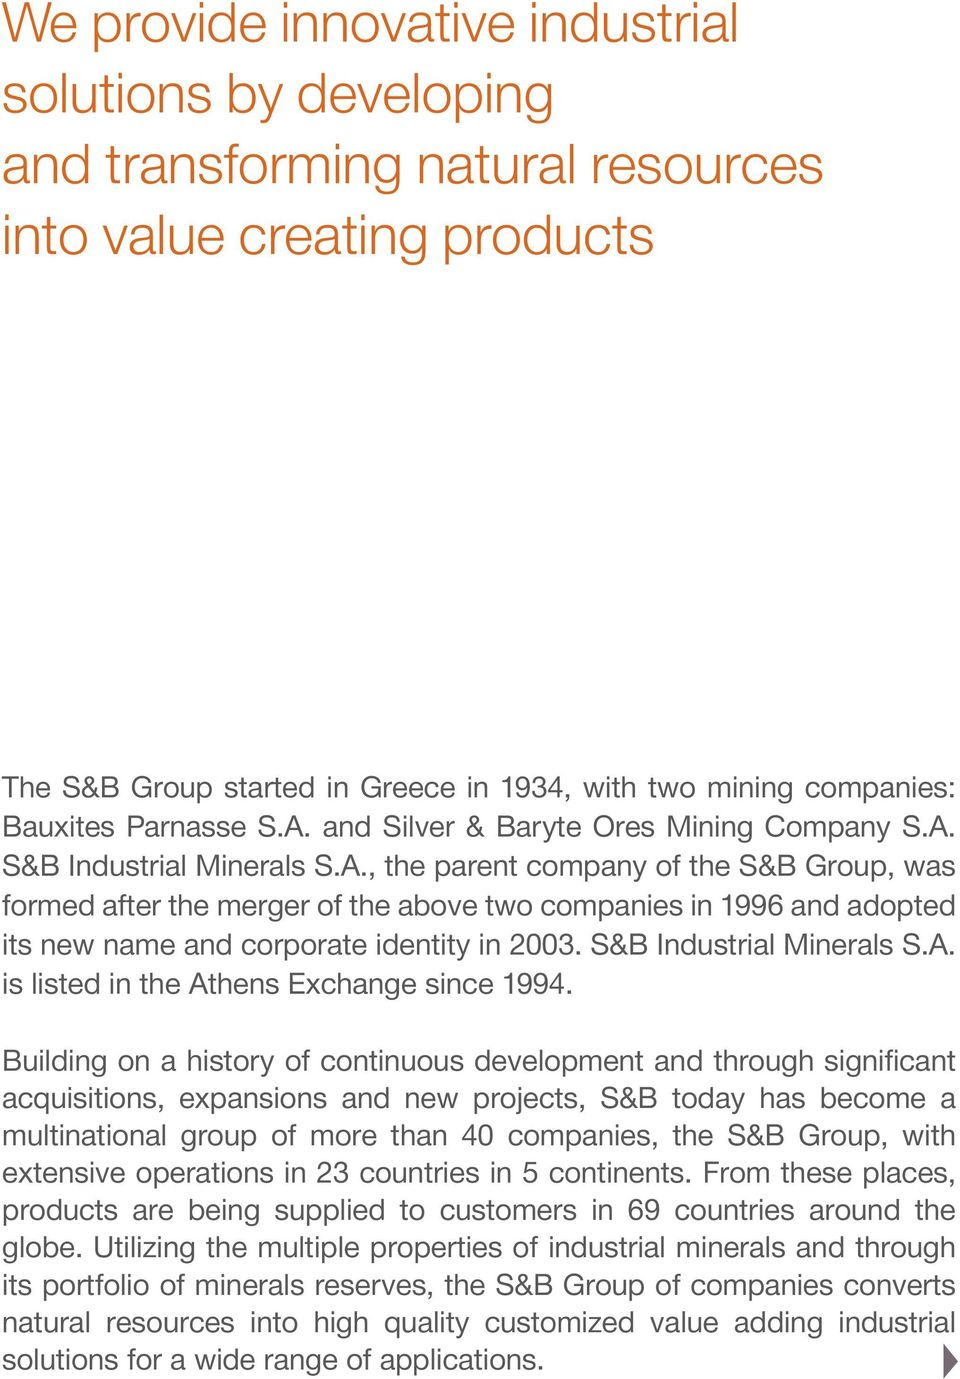 S&B Industrial Minerals S.A. is listed in the Athens Exchange since 1994.